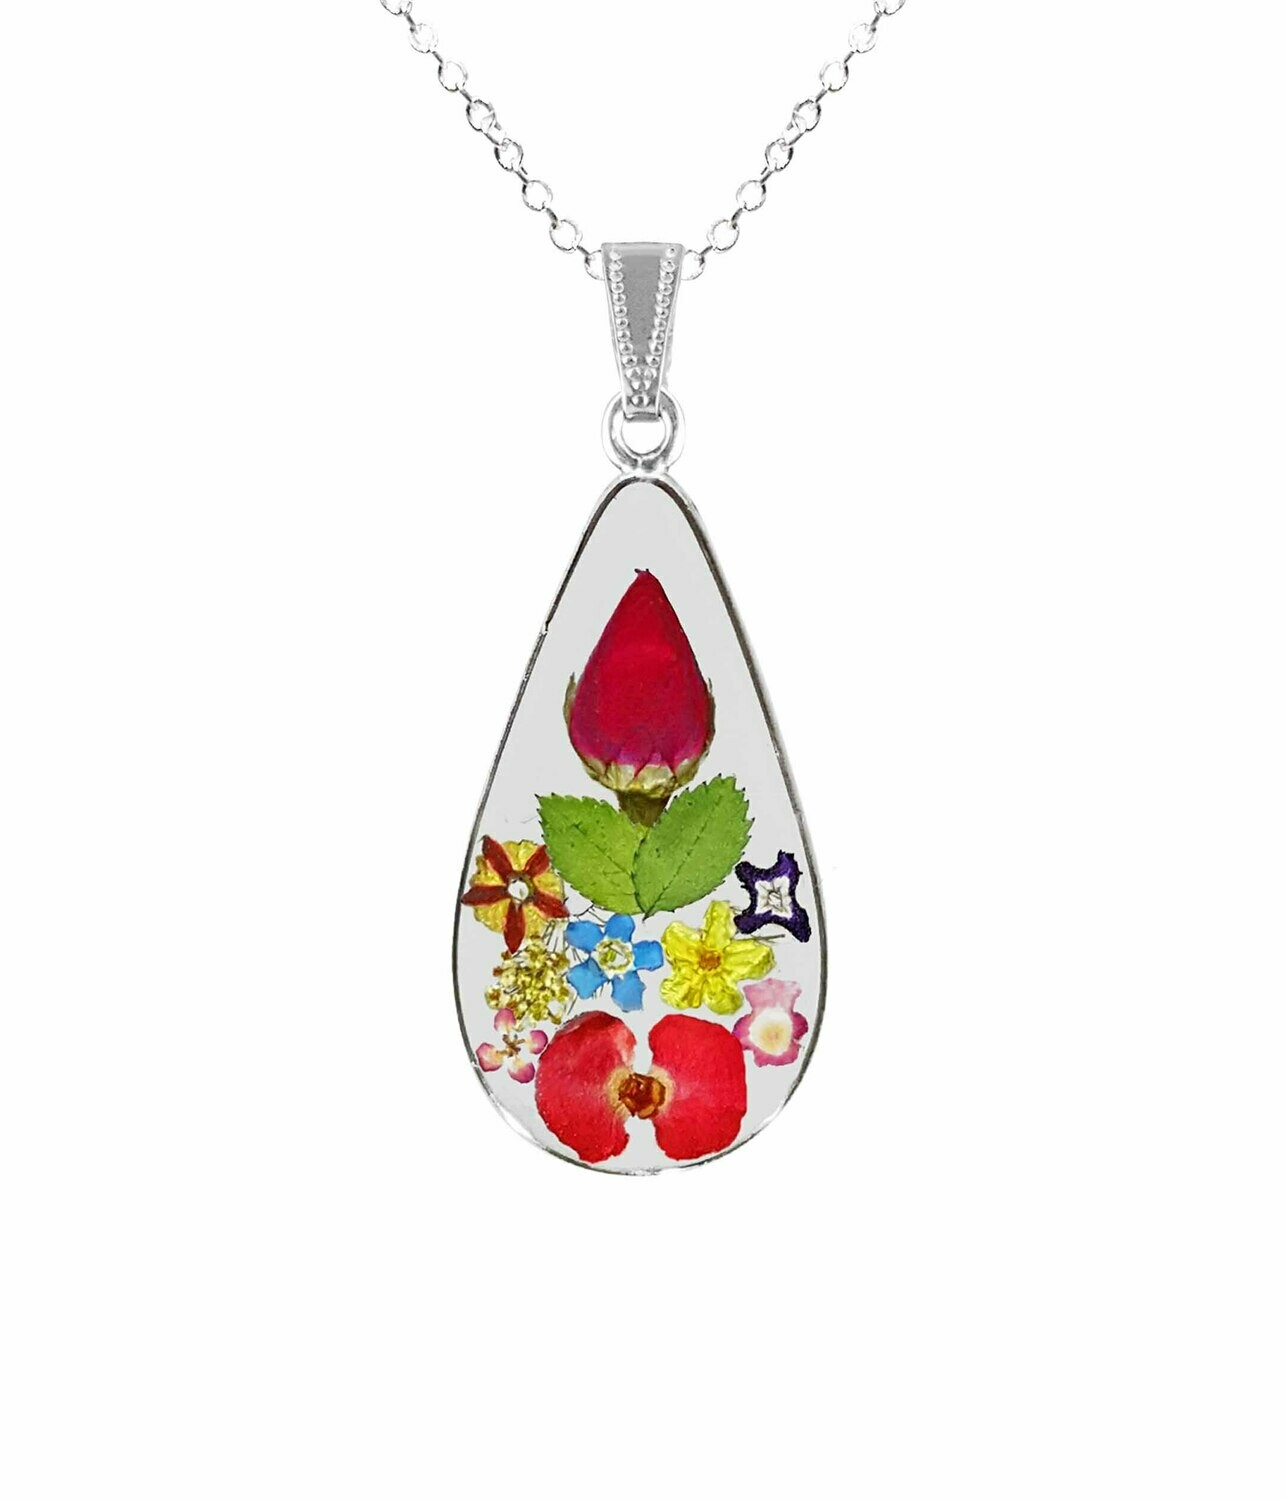 Rose & Mixed Flowers Necklace, Large Teardrop, Transparent